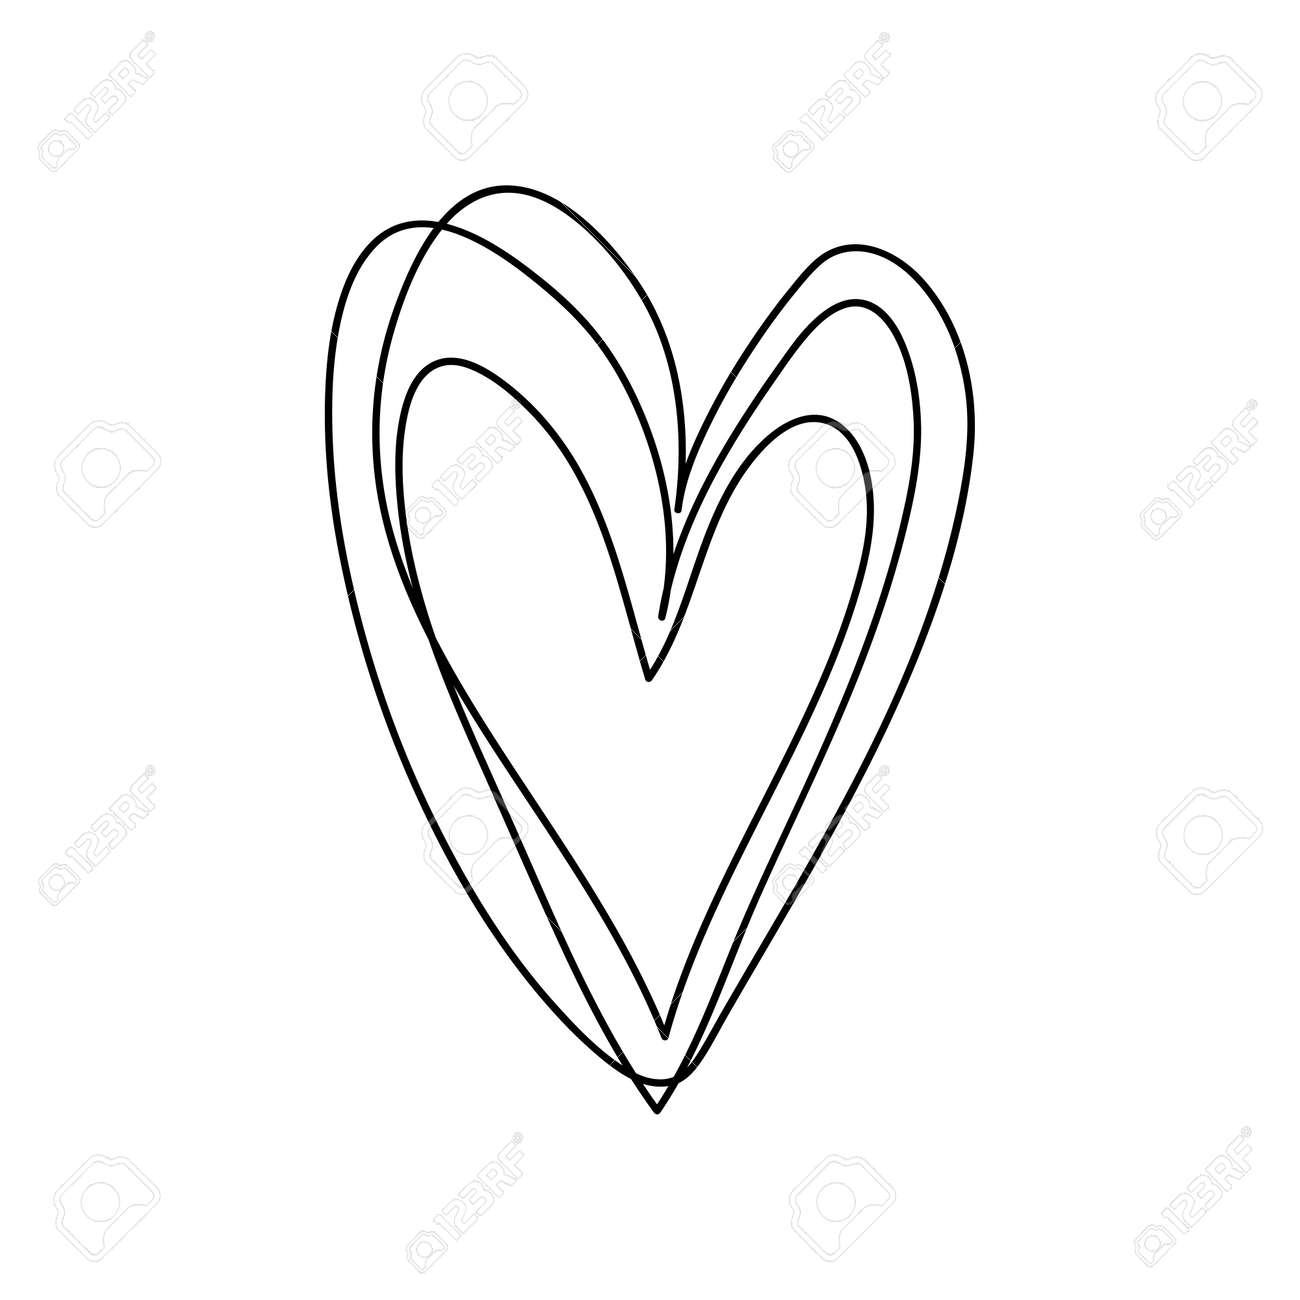 doodle hand drawn heart shaped on white background vector illustration. - 168290736